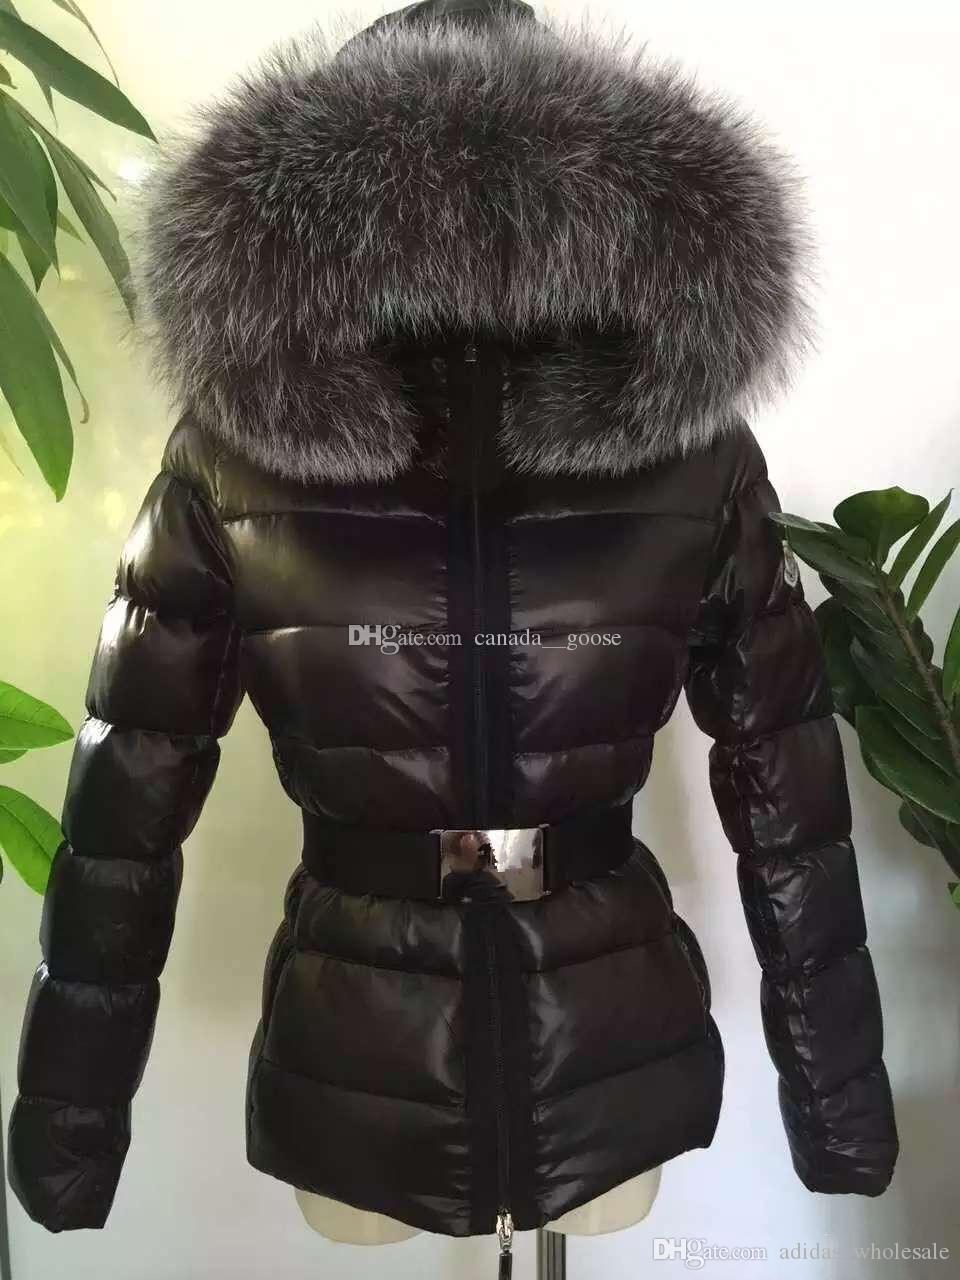 canada goose parka dhgate